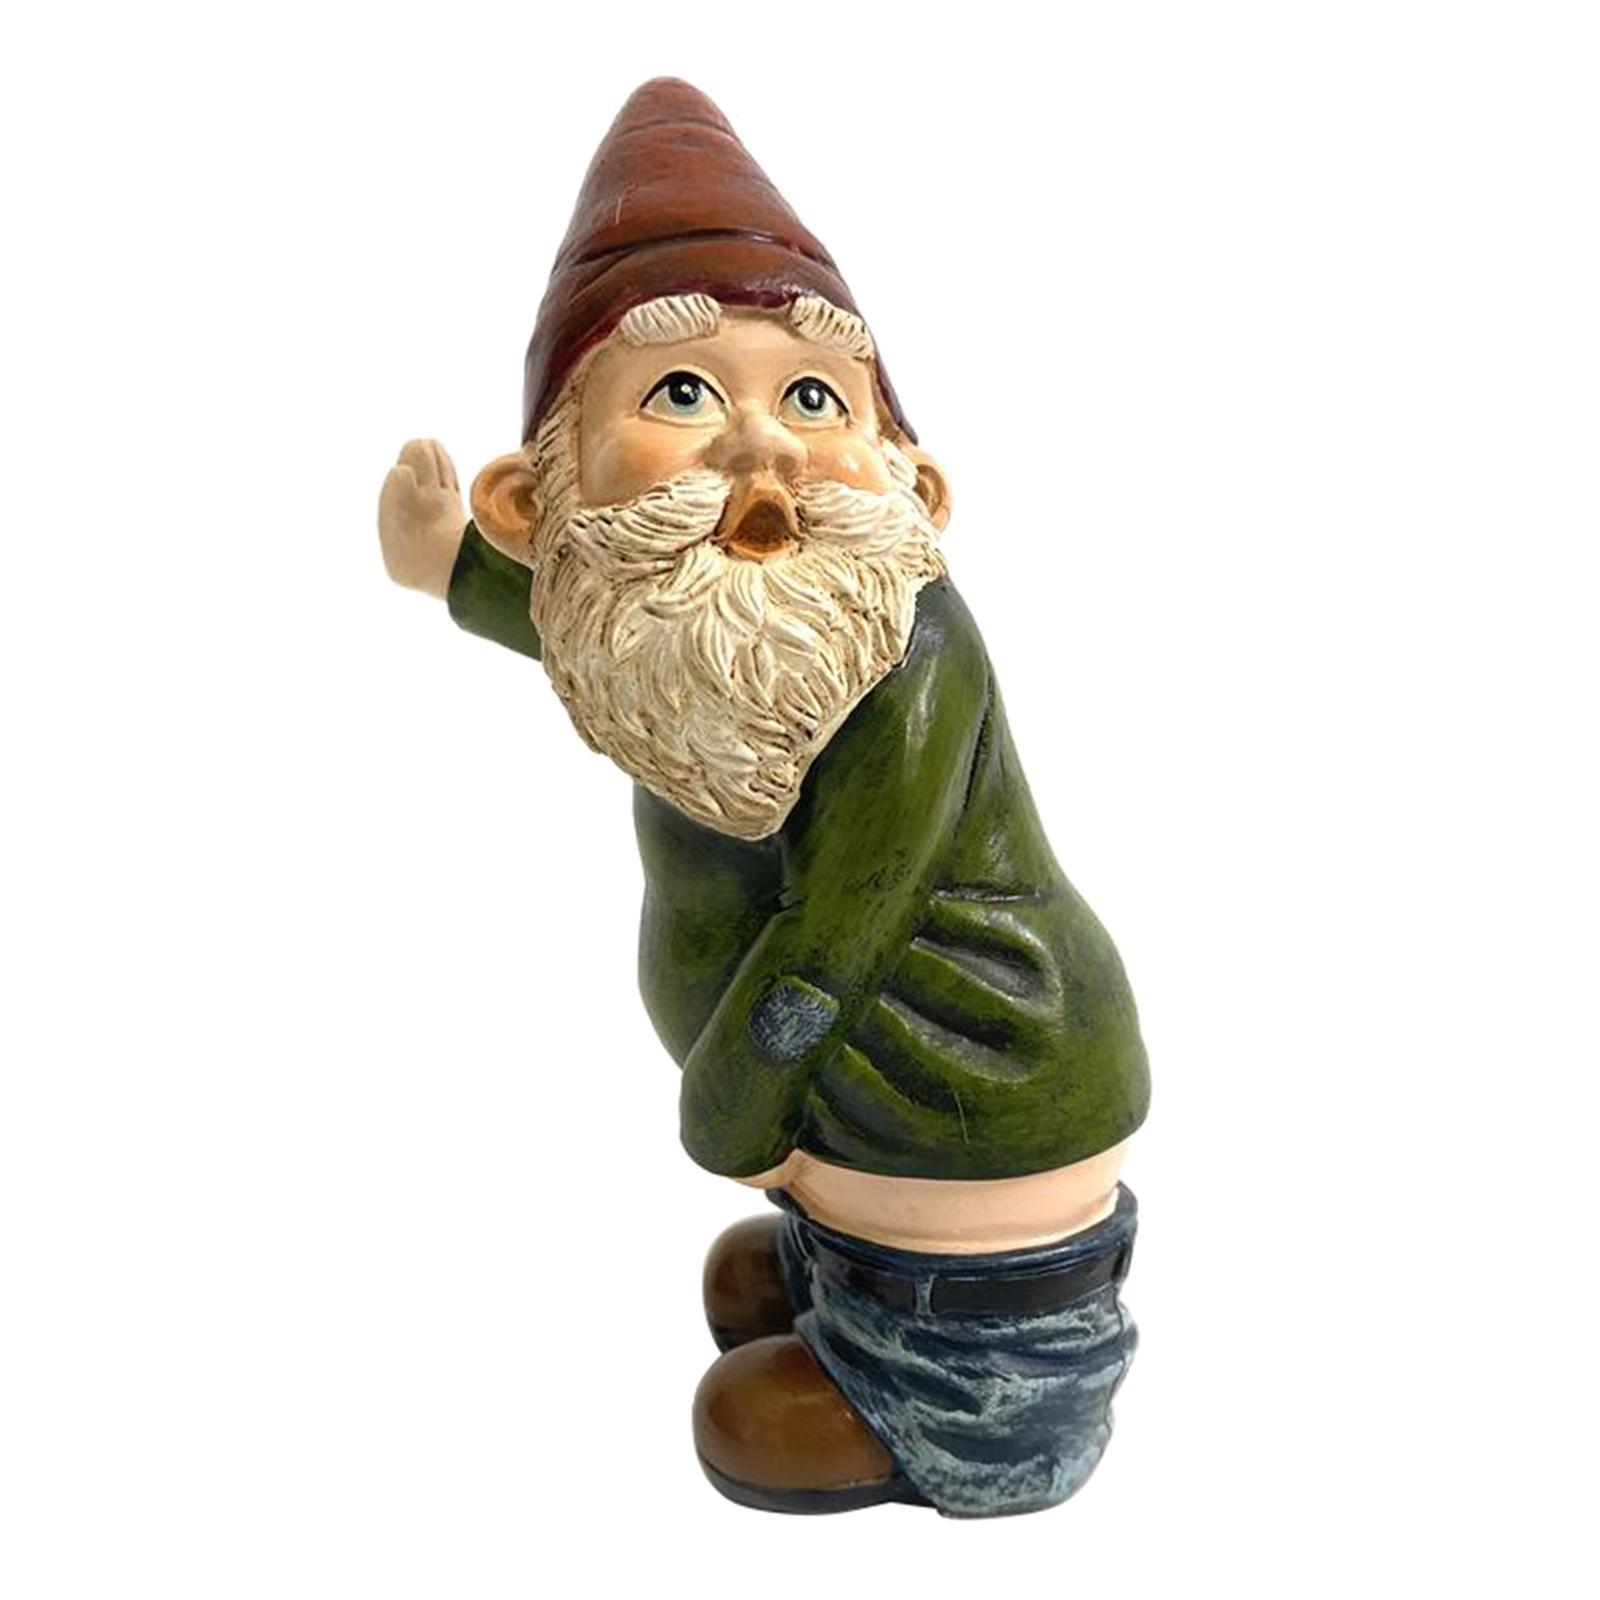 thumbnail 4 - Funny Garden Gnome Statue Figurines Christmas Dress Up DIY for Indoor Outdoor